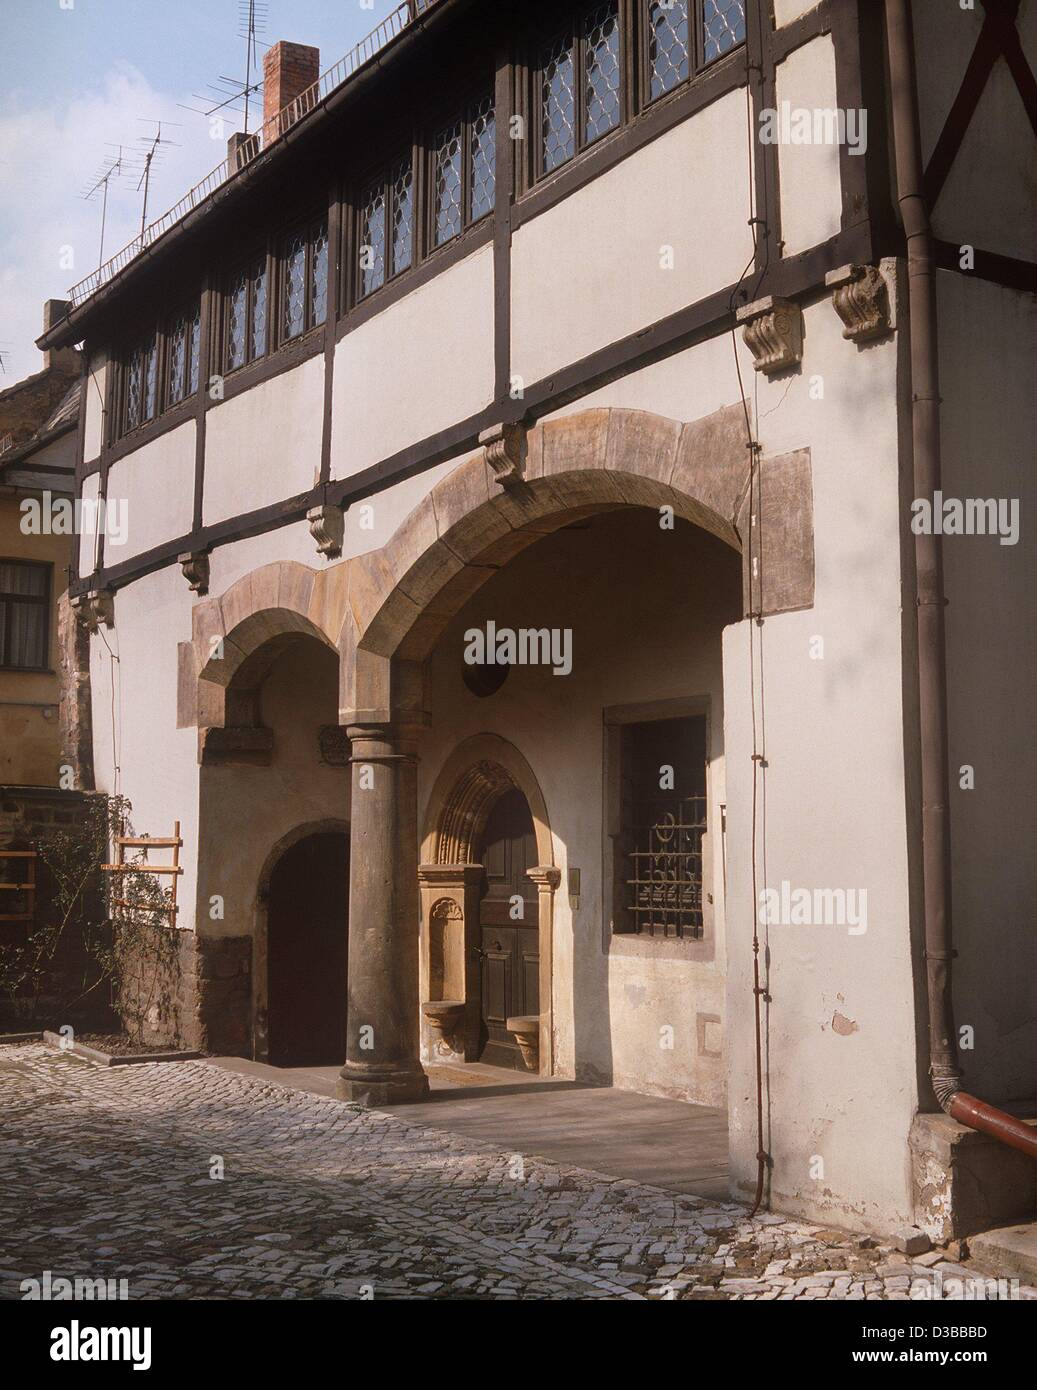 (dpa files) - The birthplace of the German reformer Martin Luther  (1483-1546) in the Luther Street 16 in Eisleben, - Stock Image